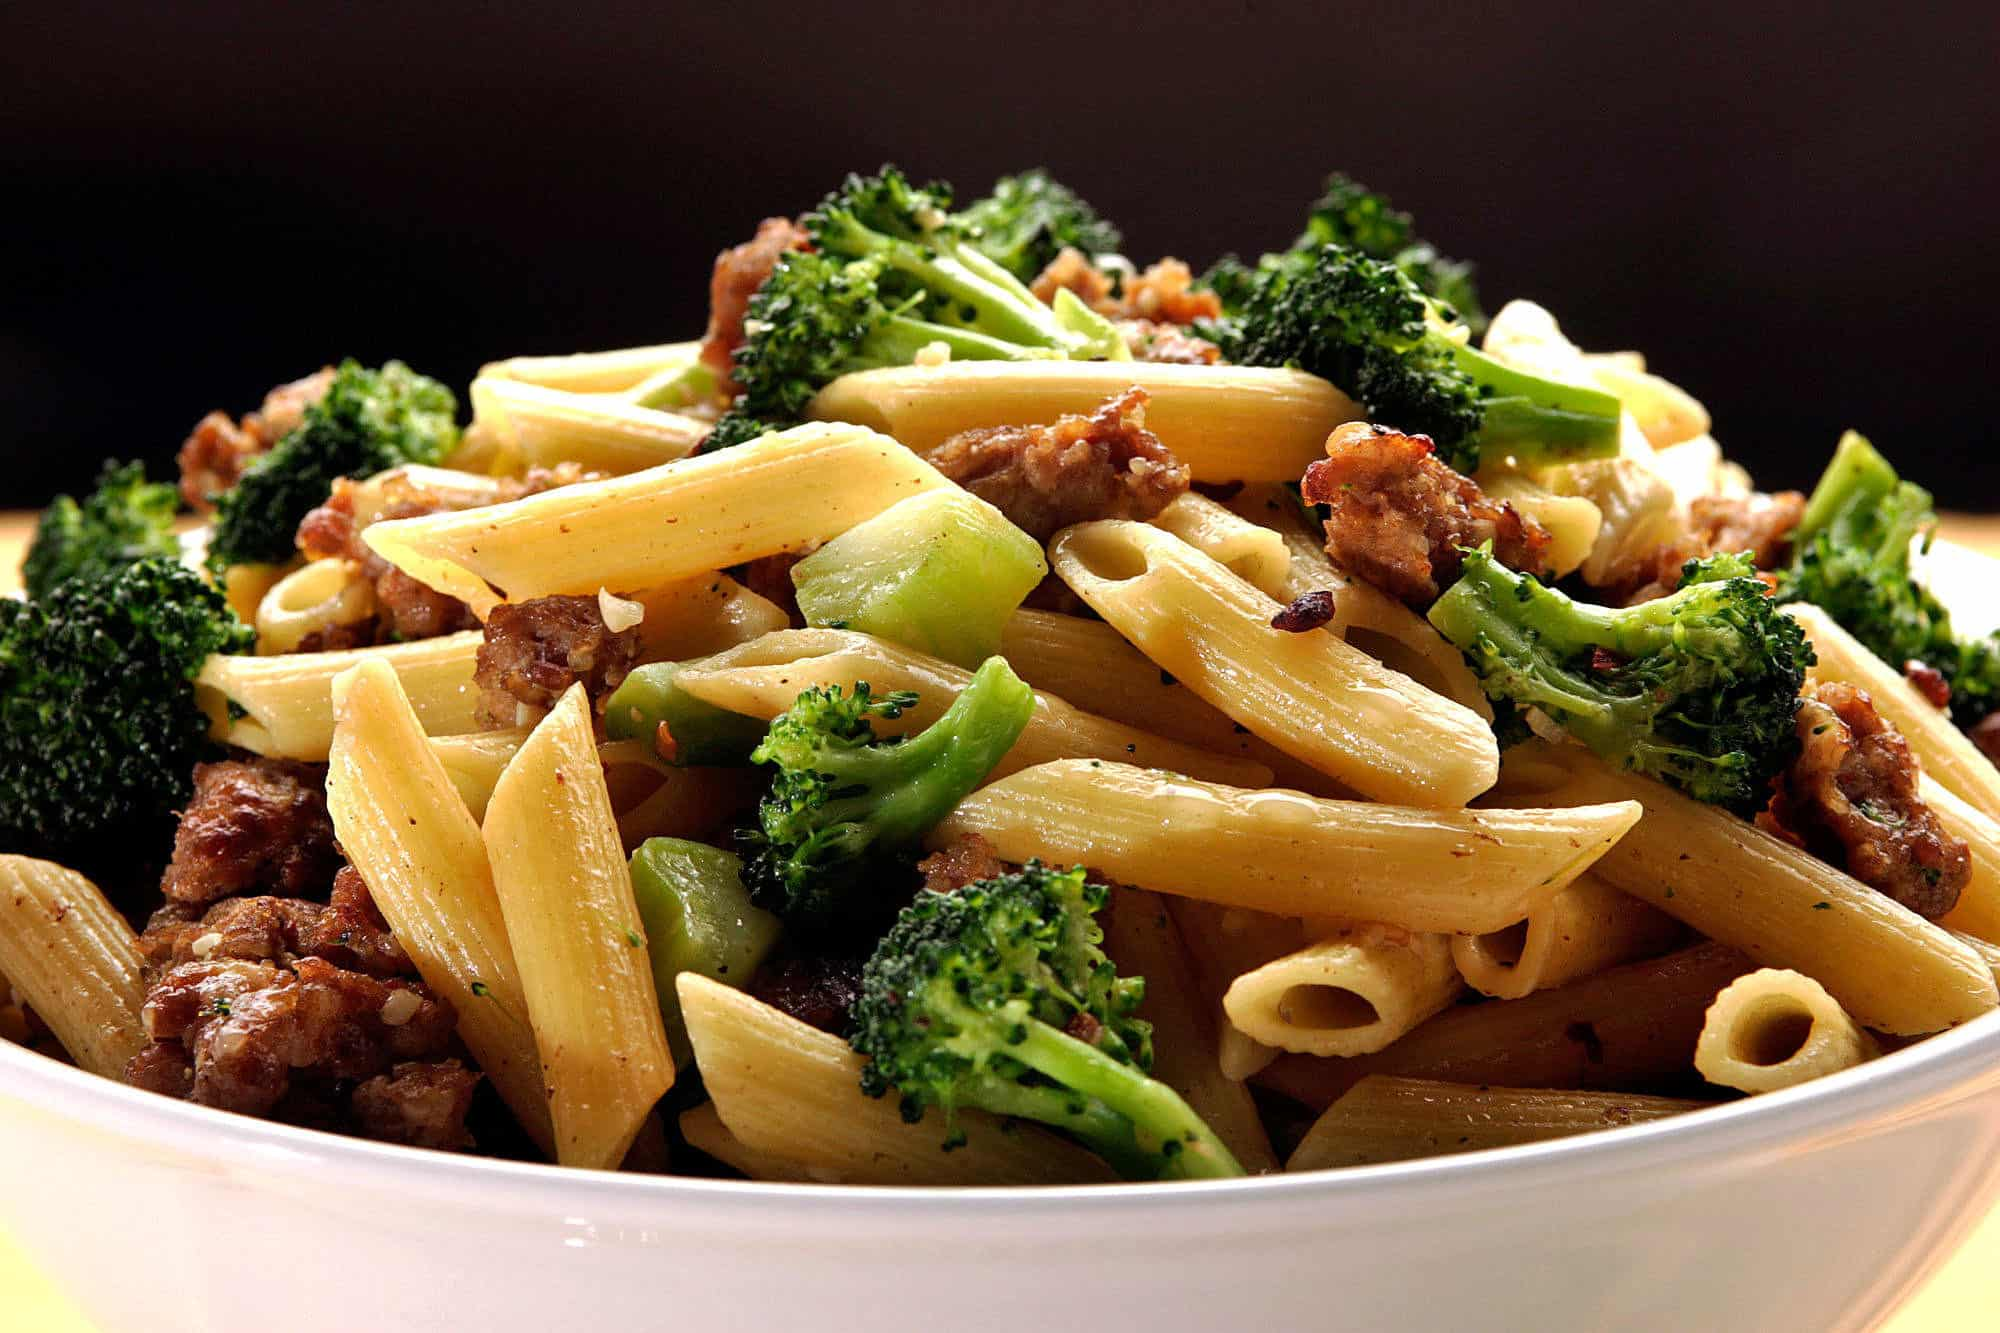 Broccoli and Italian sausage pasta